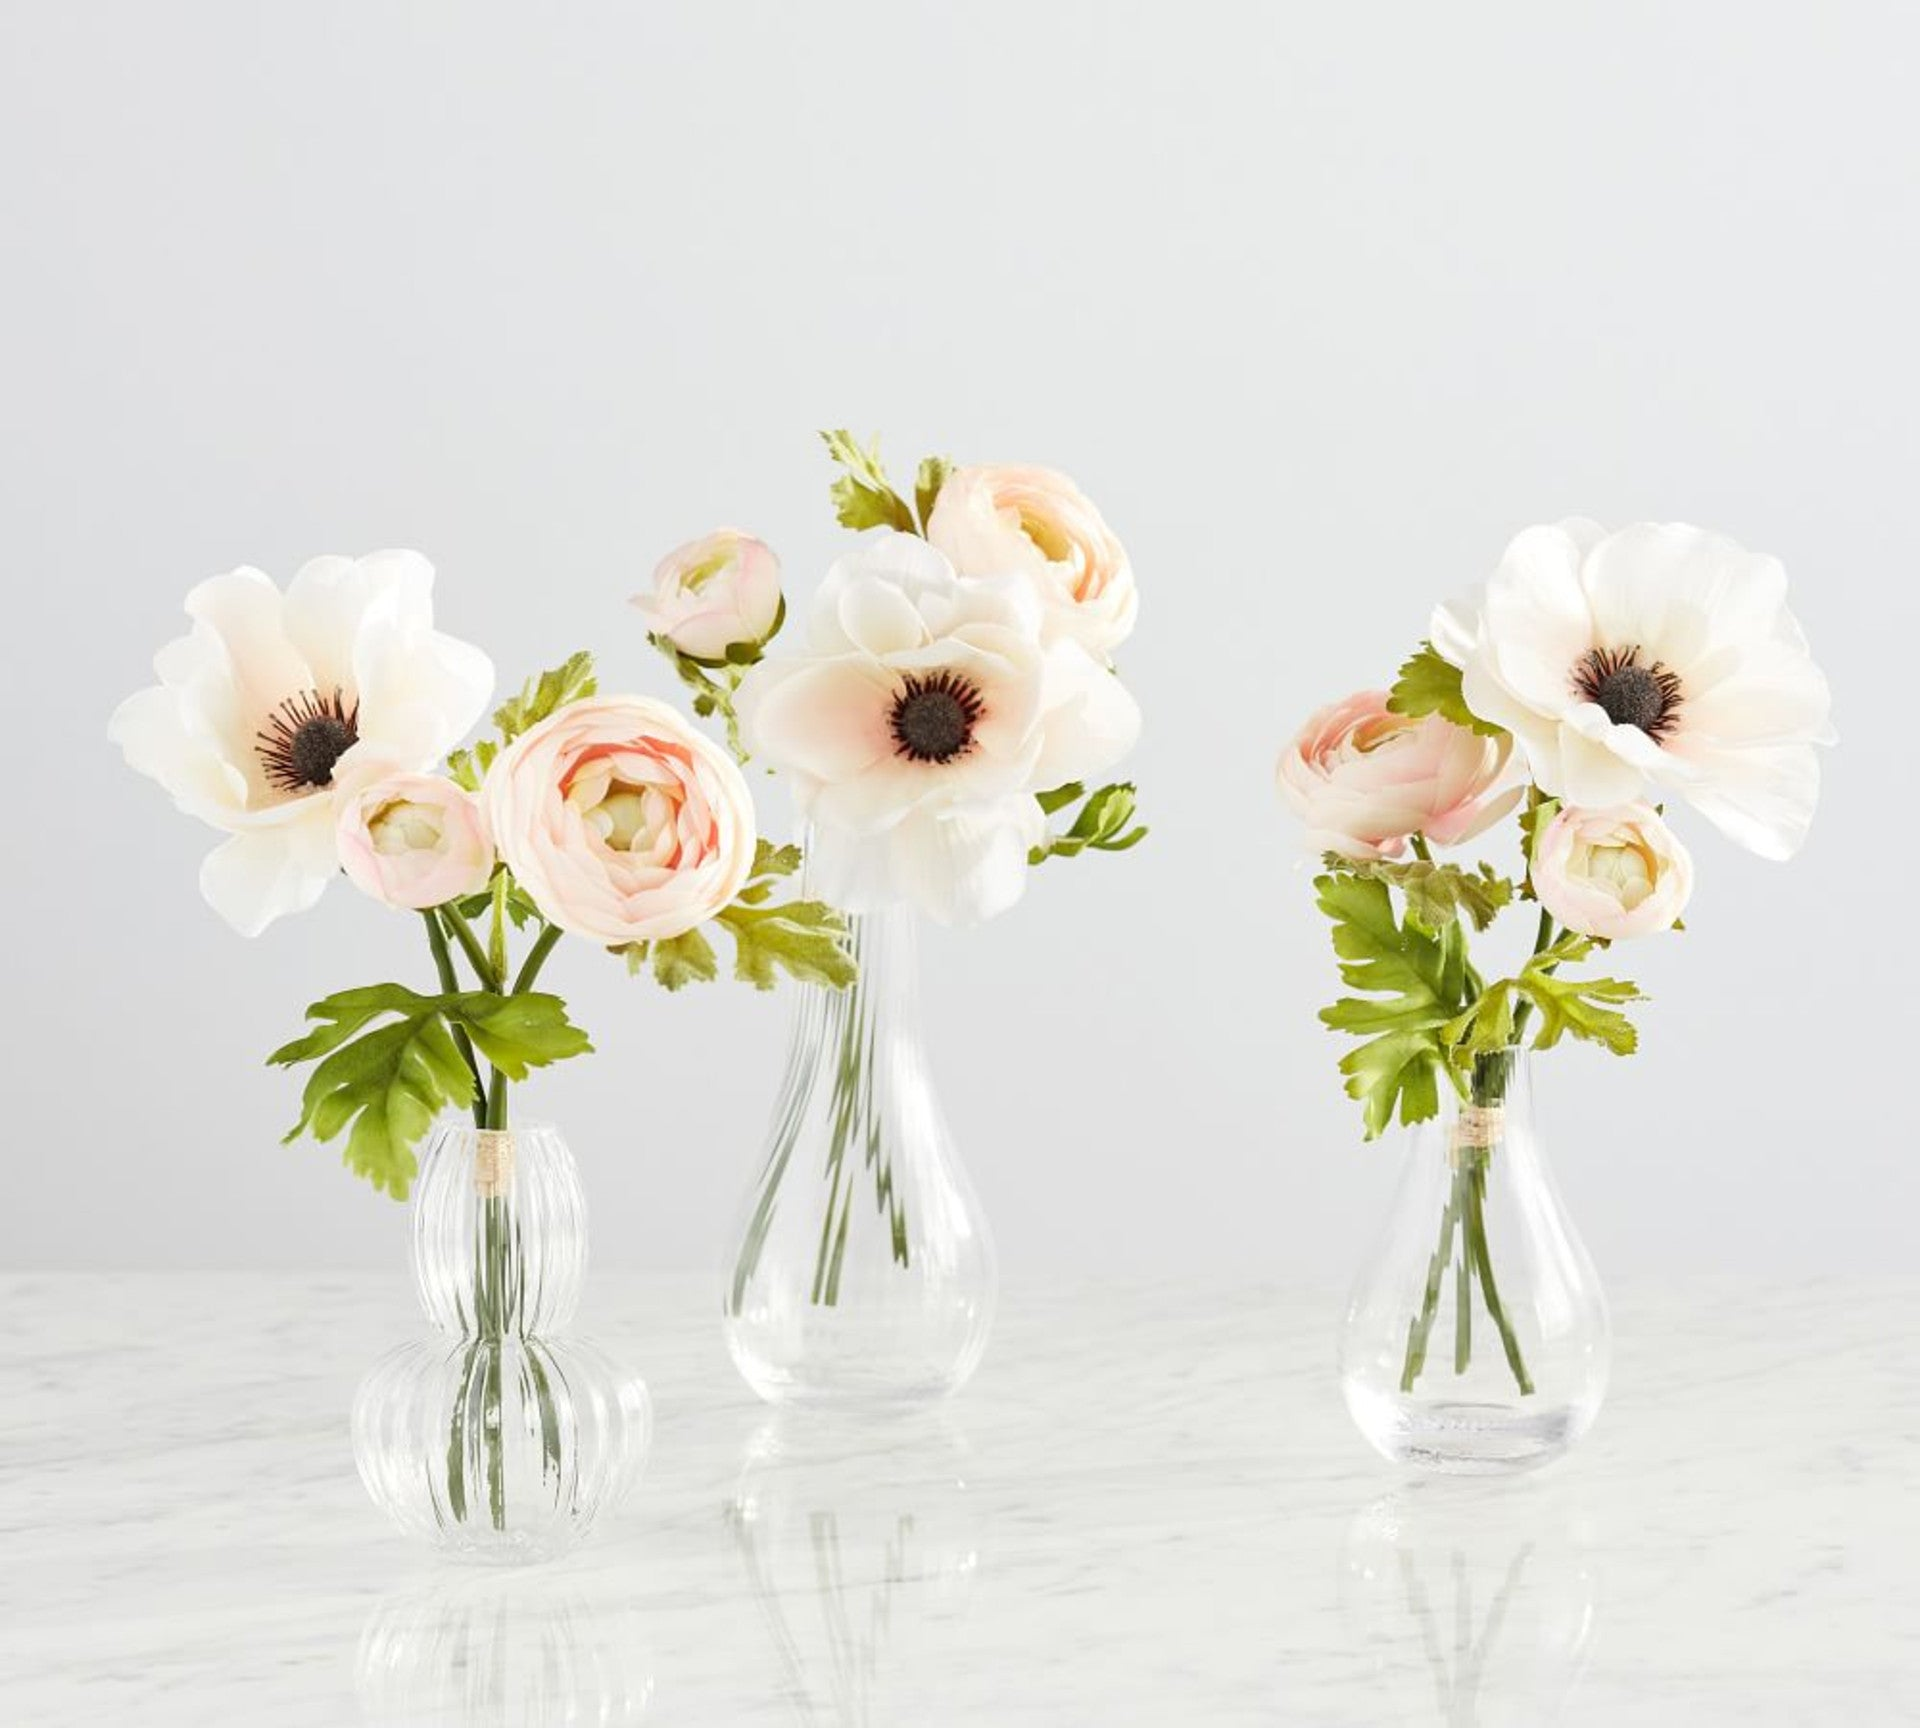 anemone and ranunculus in glass bud vases